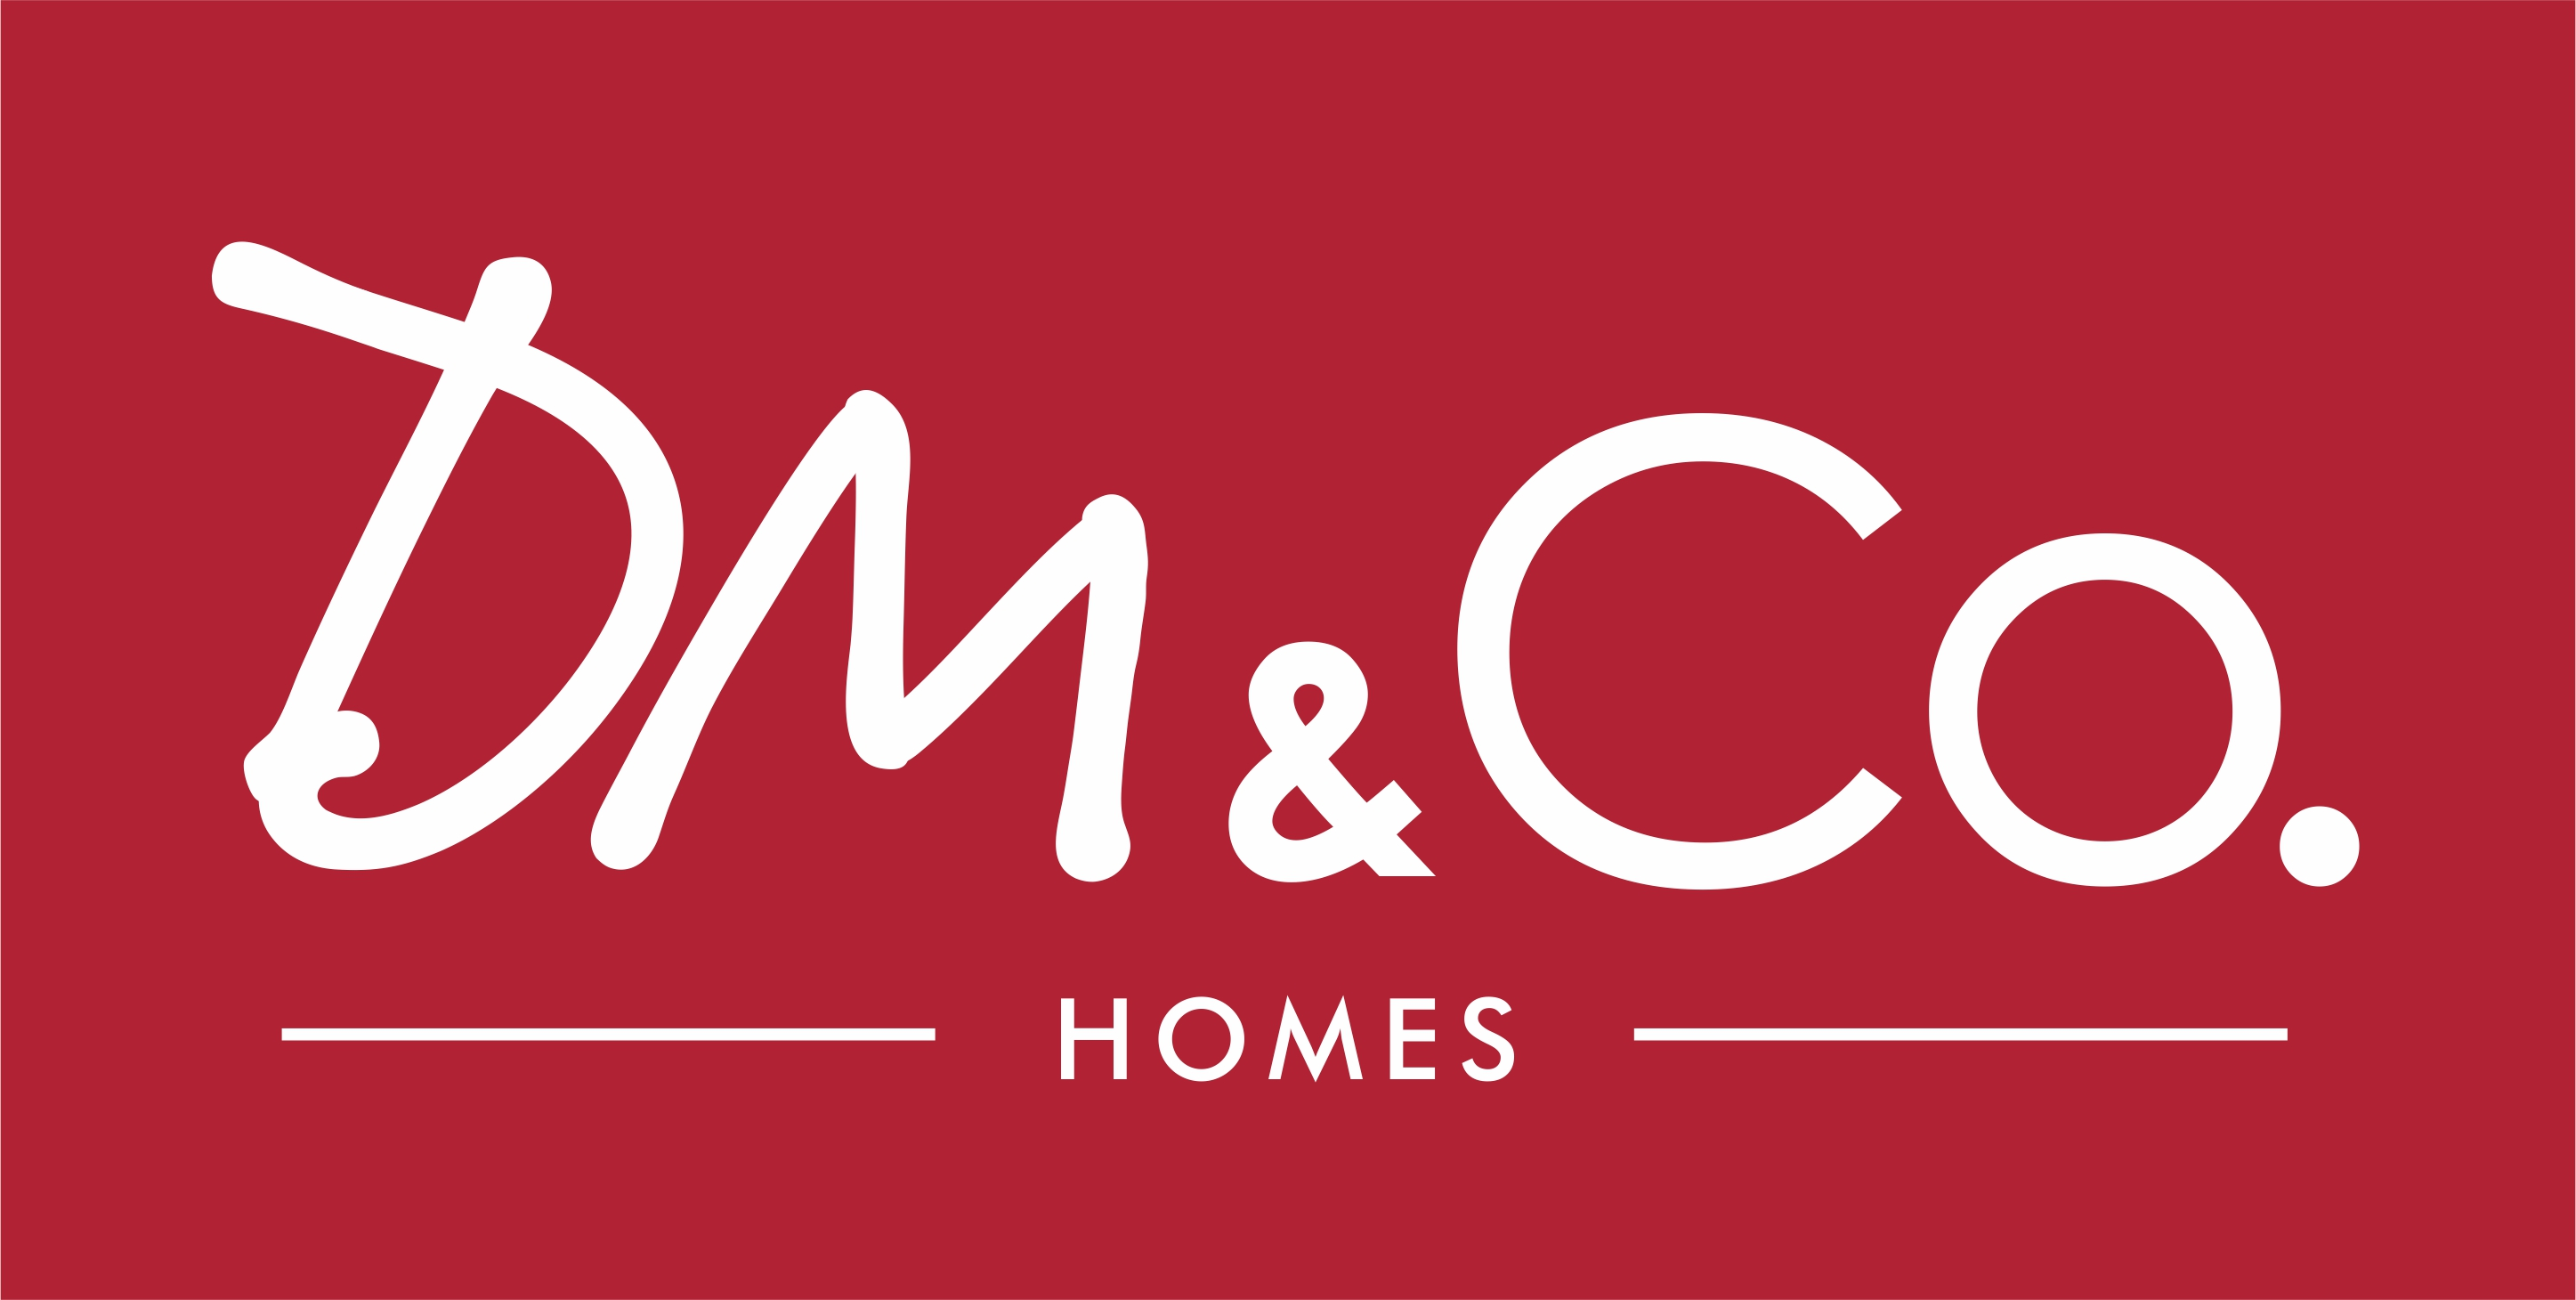 DM & Co. Homes